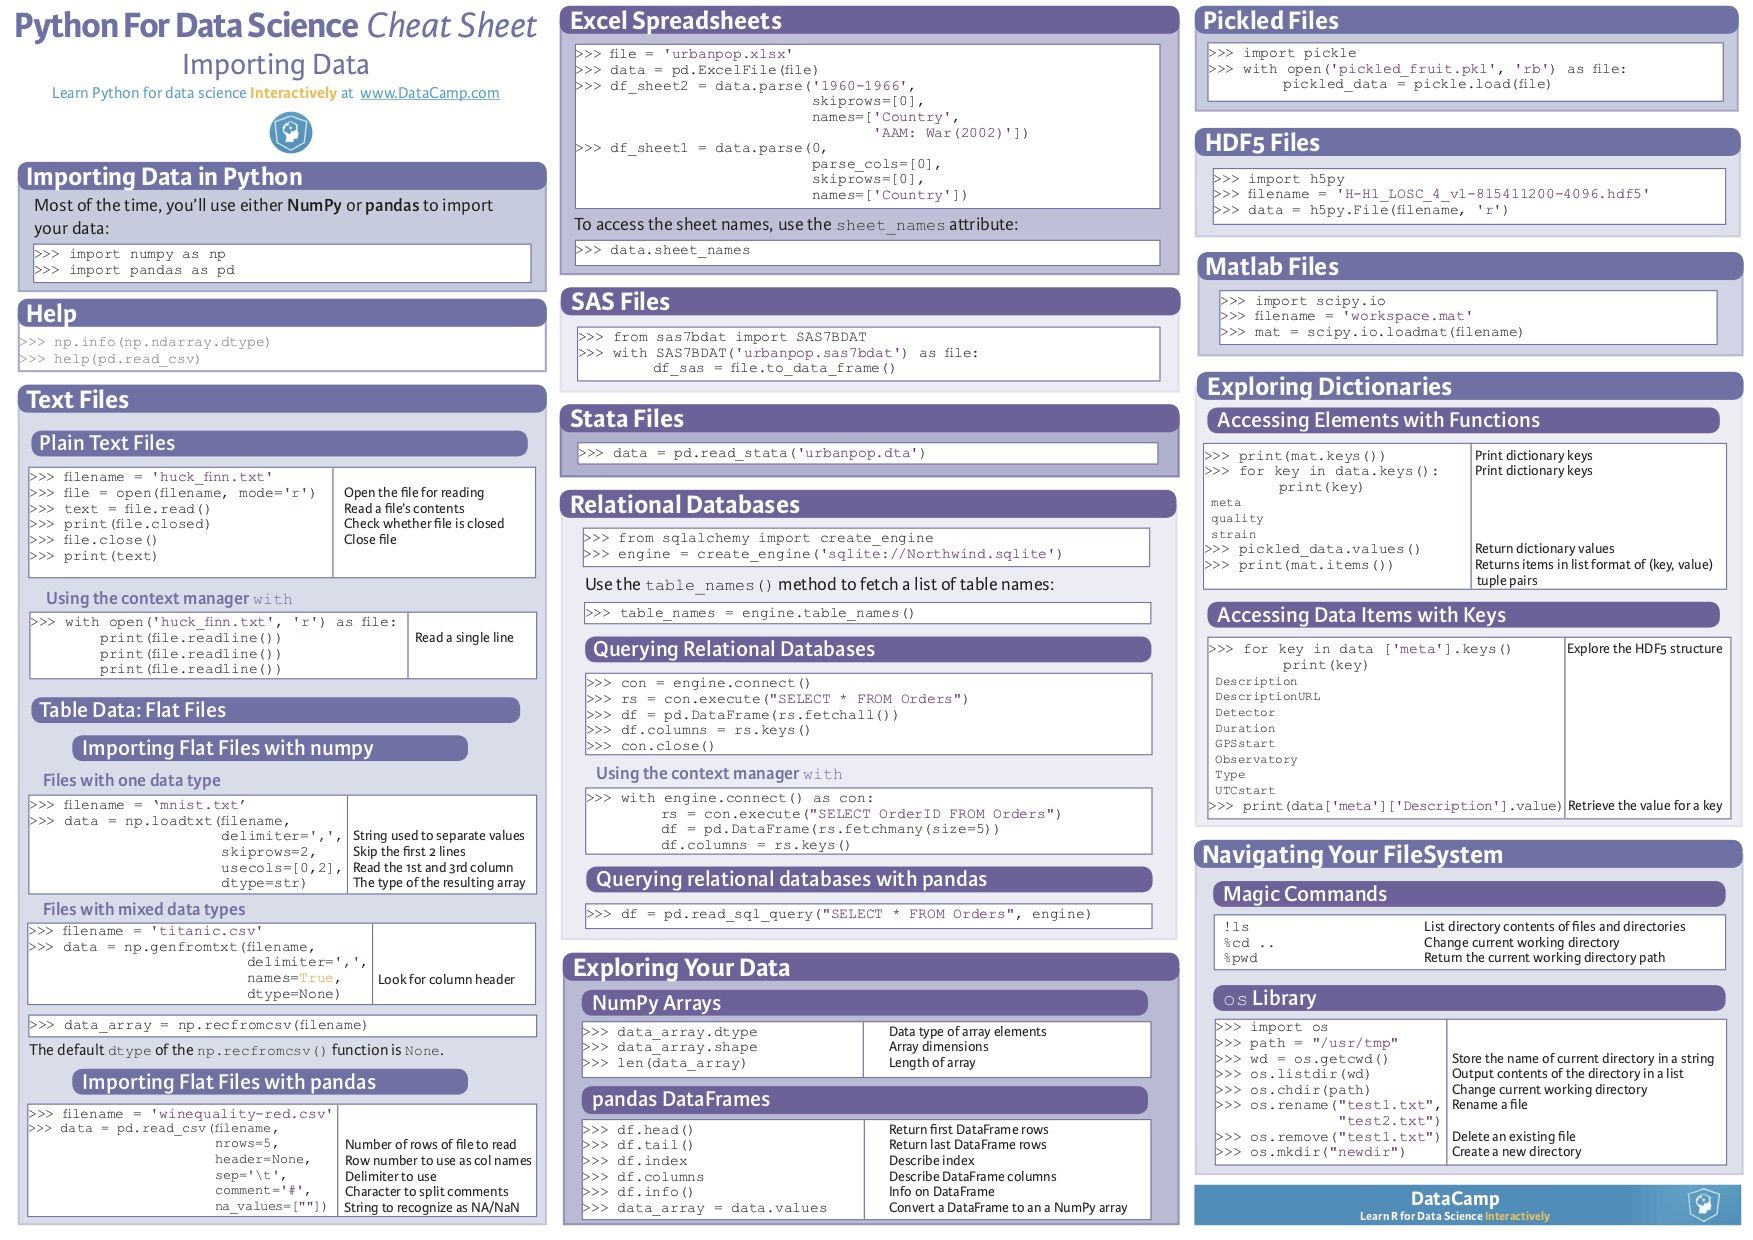 Importing Data - Python Cheat Sheet (Datacamp) This Python